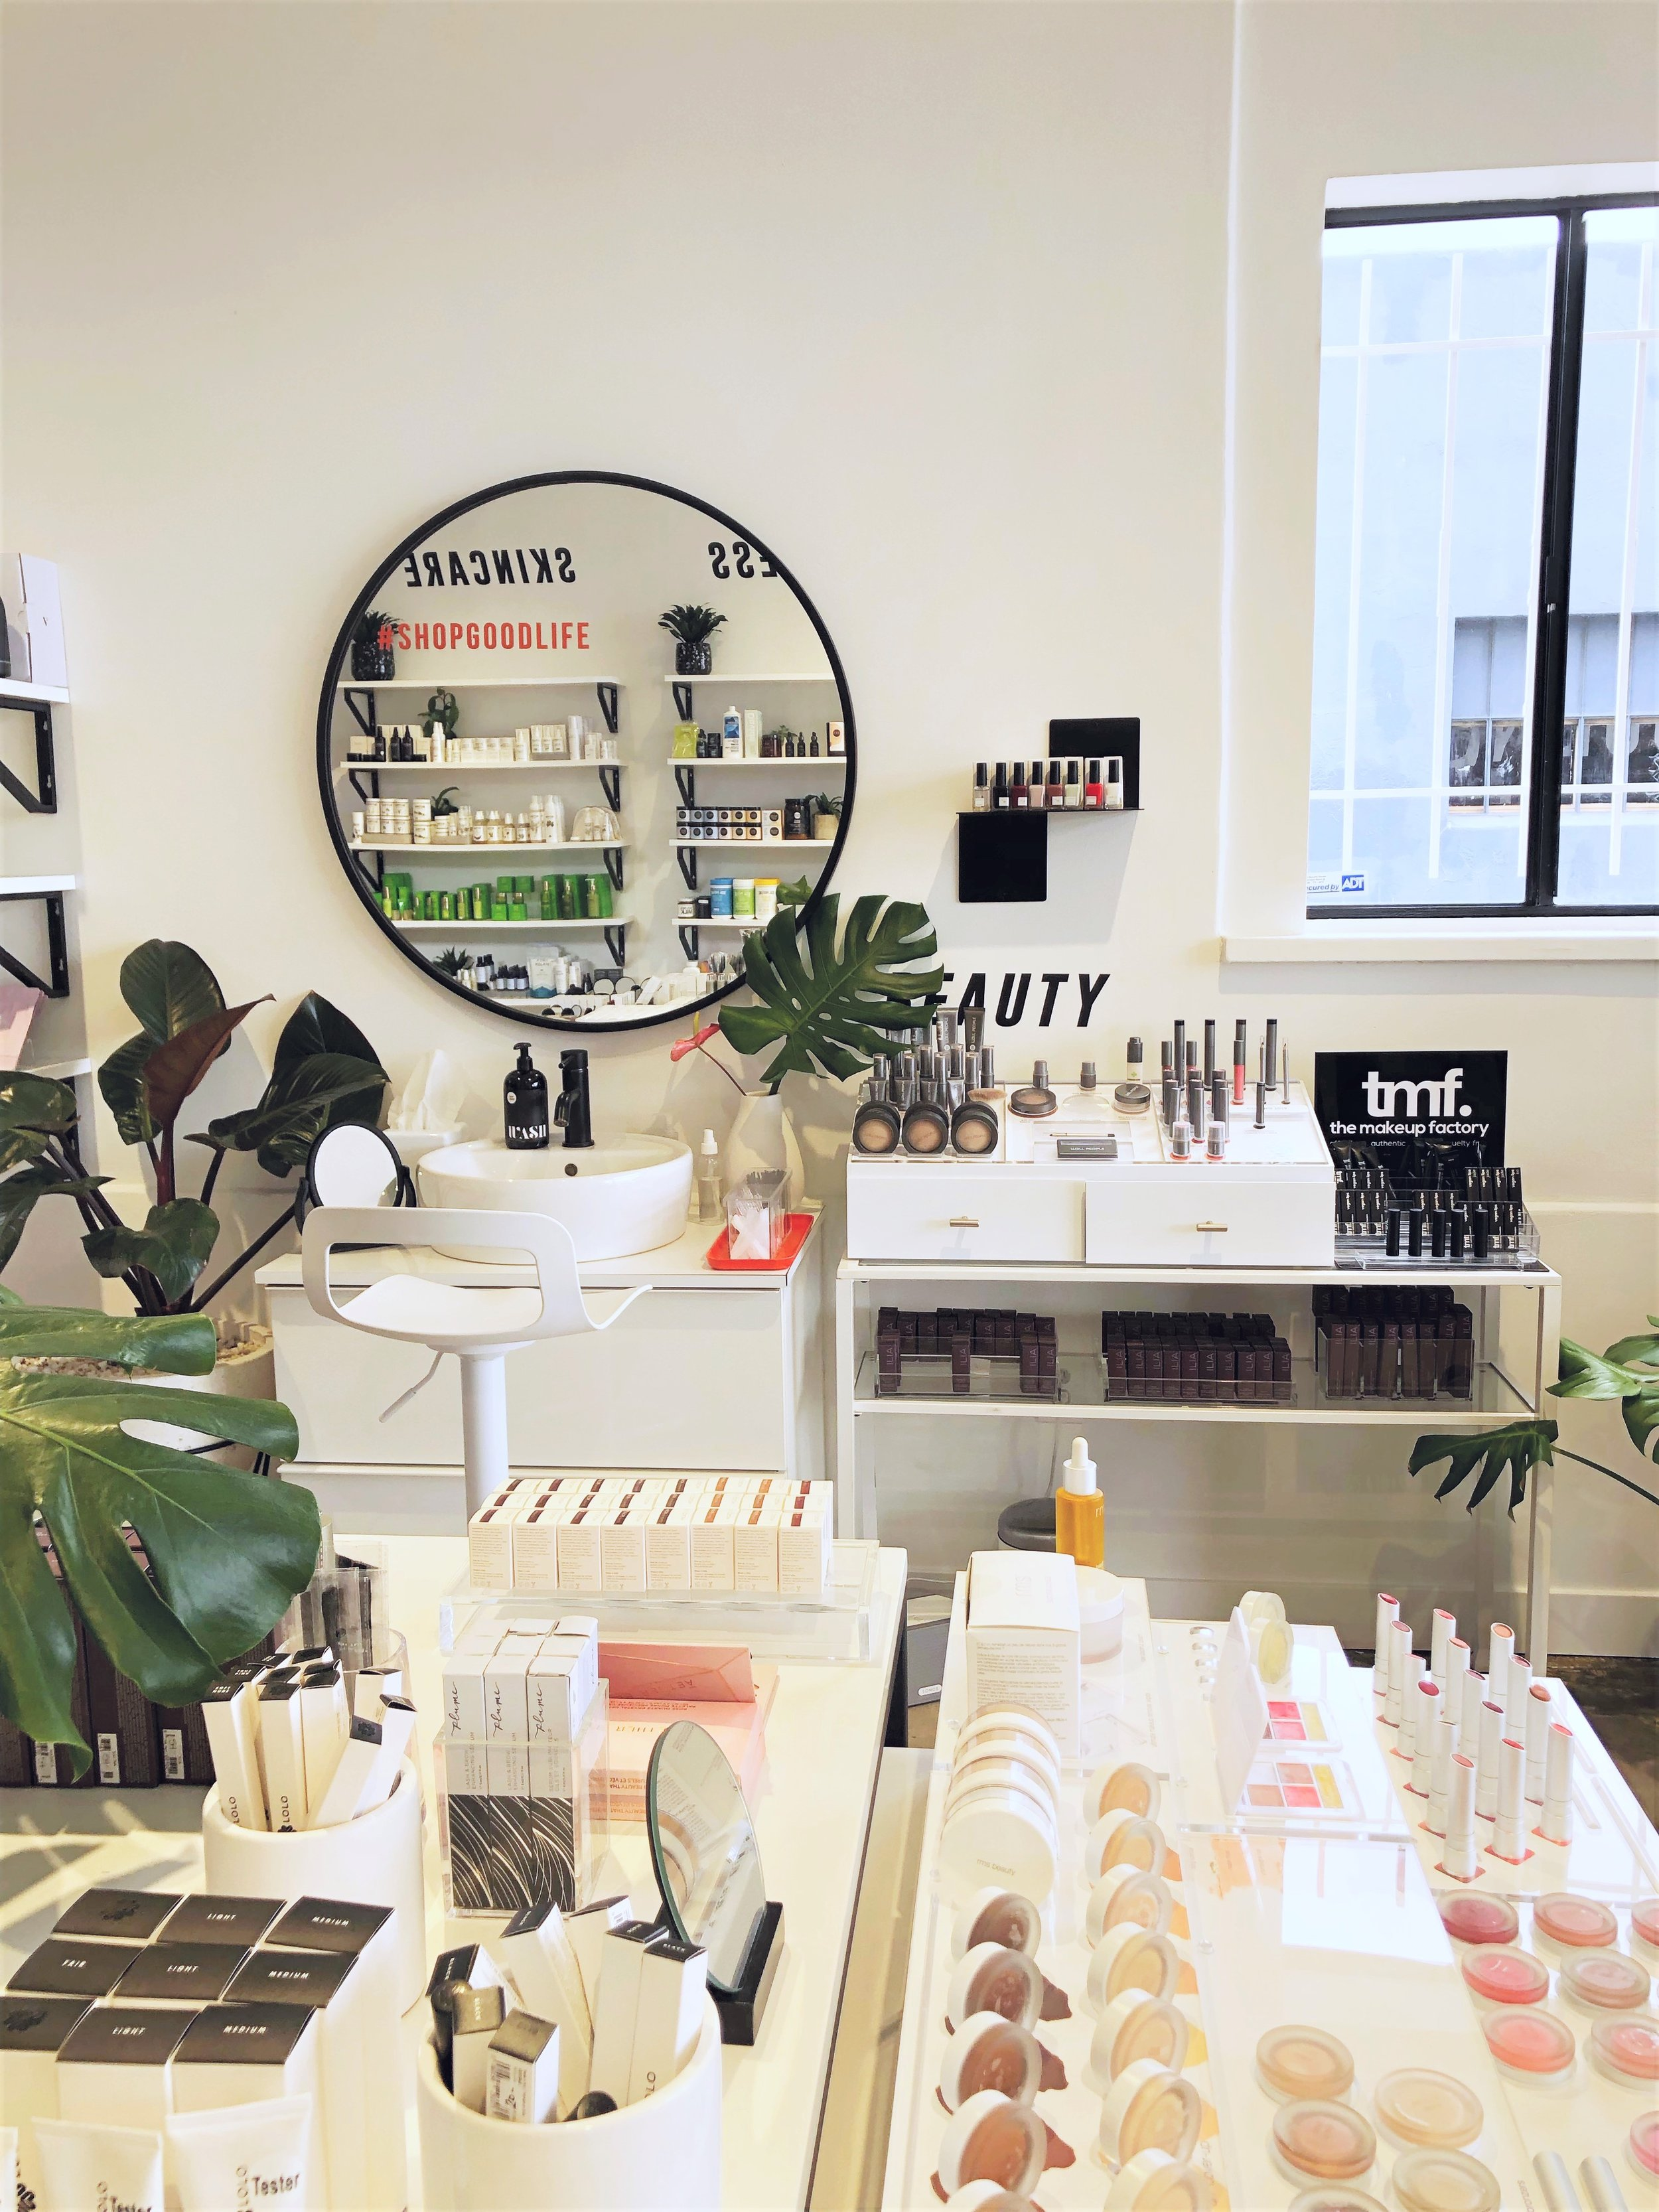 As I captioned in the picture that kicked off this post, I stopped by  Shop Good , a clean beauty store. The ladies who worked there was super nice and helpful. I didn't need to restock on anything in particular but did leave with that cute pink sweatshirt!